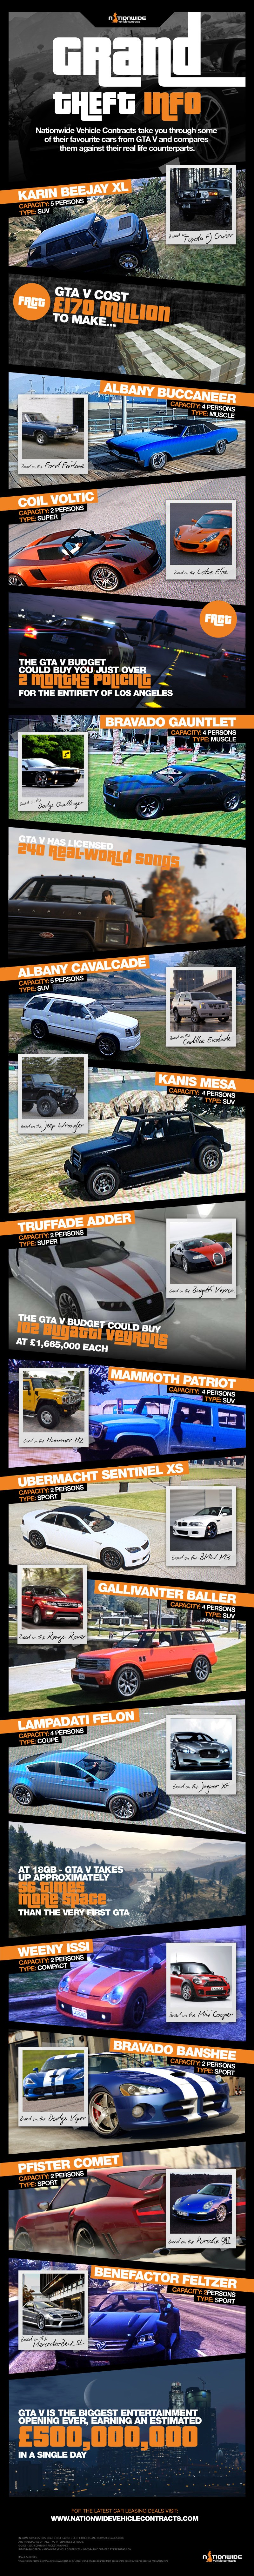 cars in gta 5 and their real life counterparts